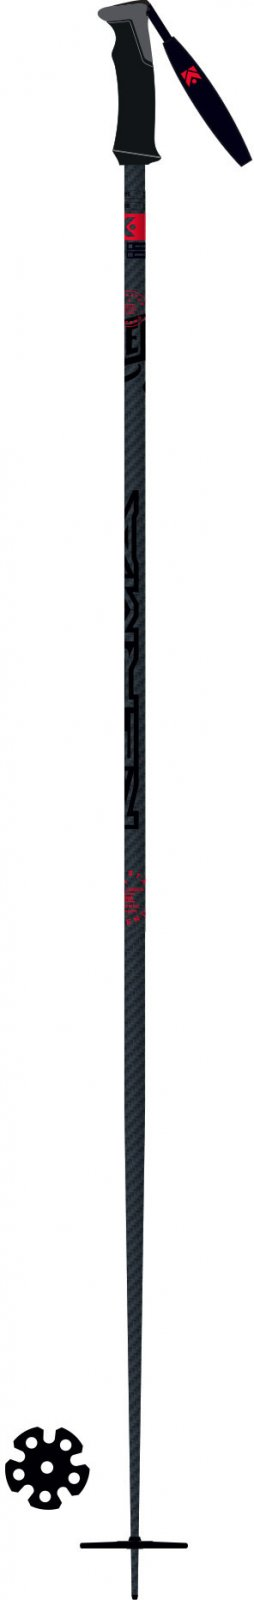 Kerma Legend Carbon Safety Ski Poles 2020